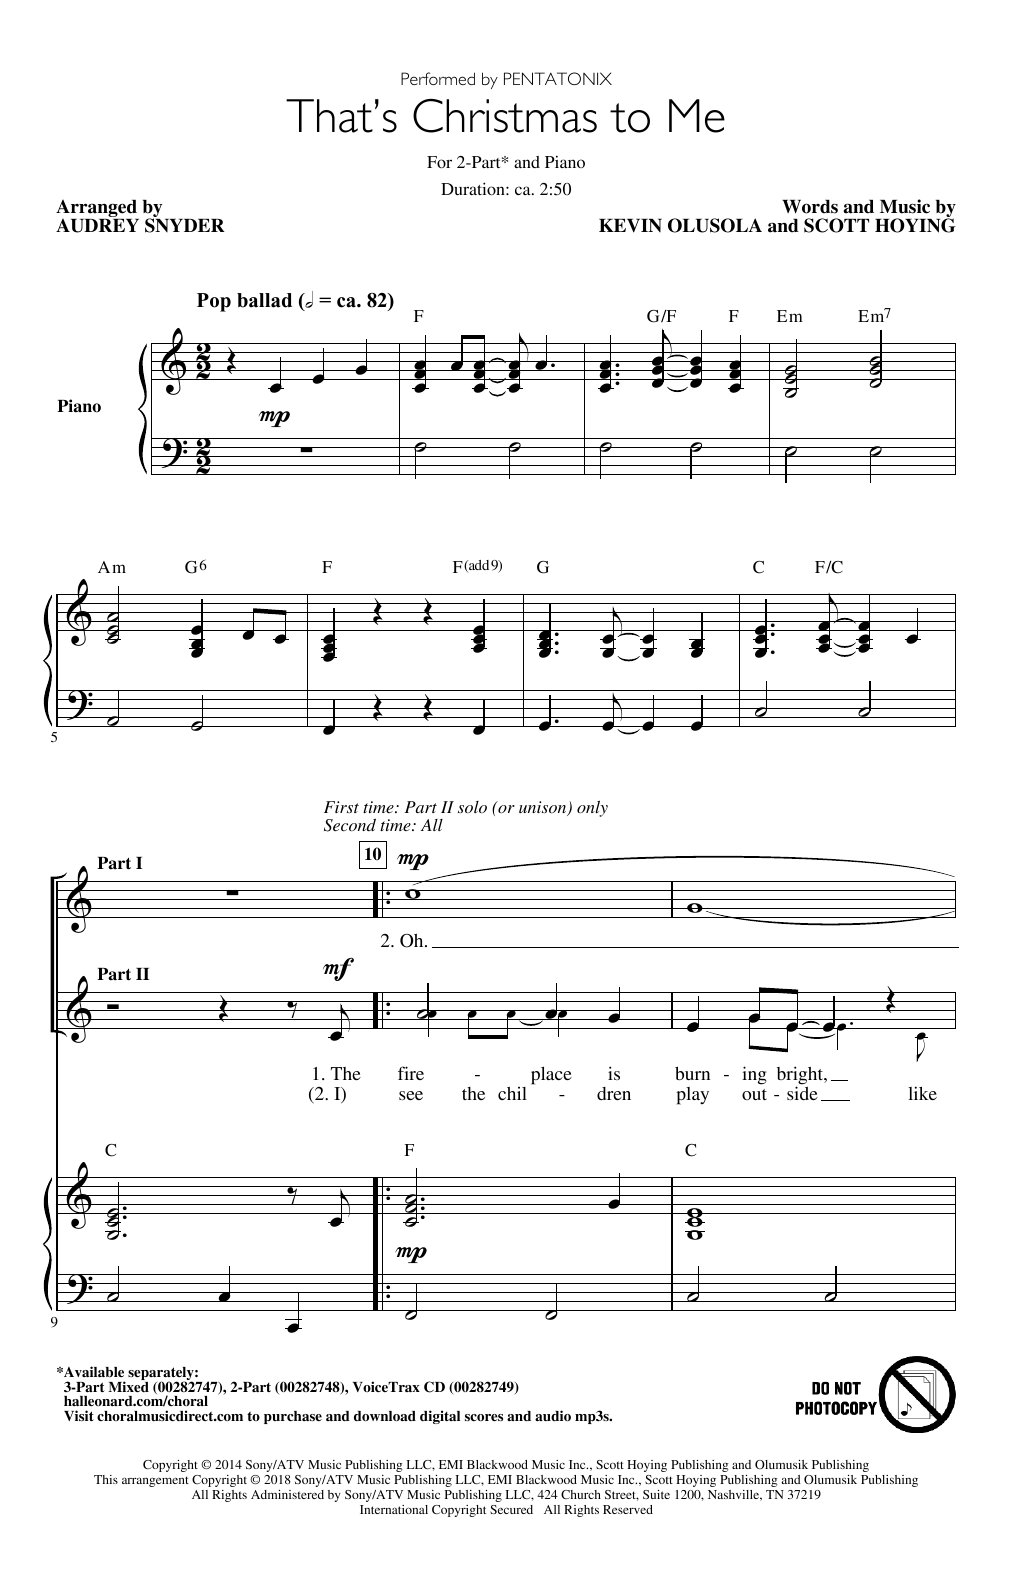 Thats Christmas To Me.That S Christmas To Me Arr Audrey Snyder By Pentatonix 3 Part Mixed Choir Digital Sheet Music